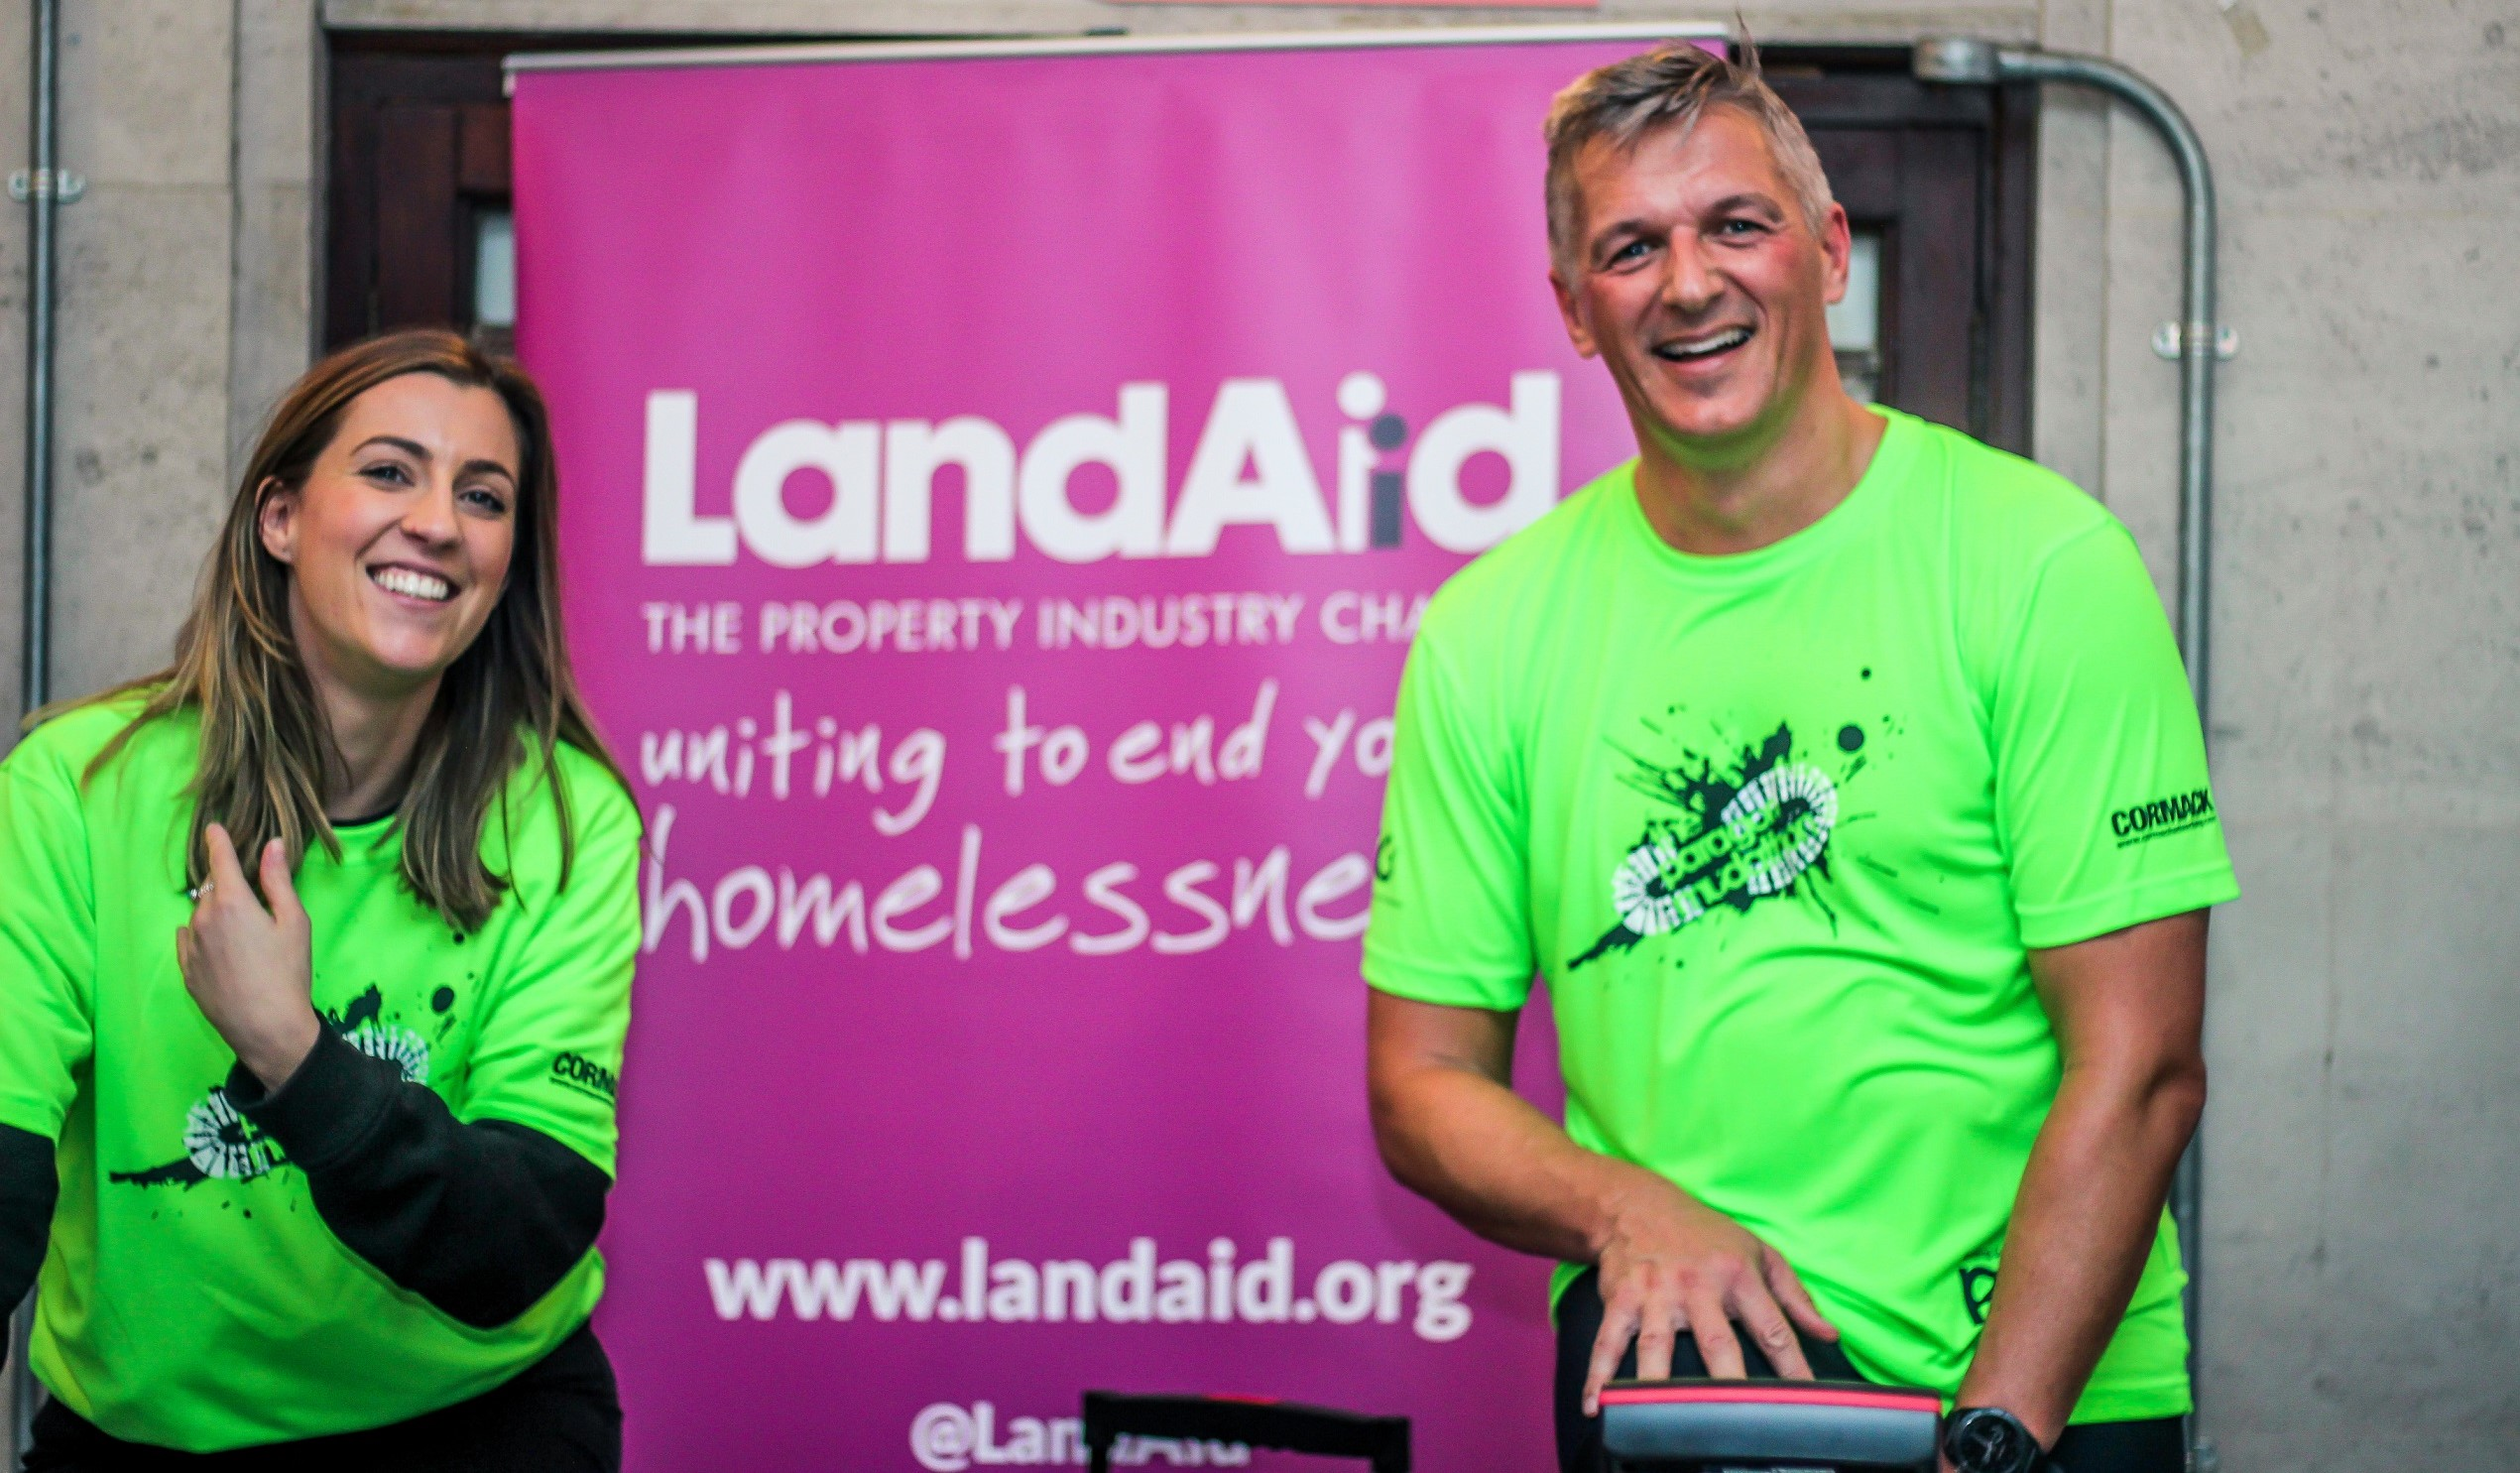 Paragon hits the road for LandAid in £40,000 fundraising drive